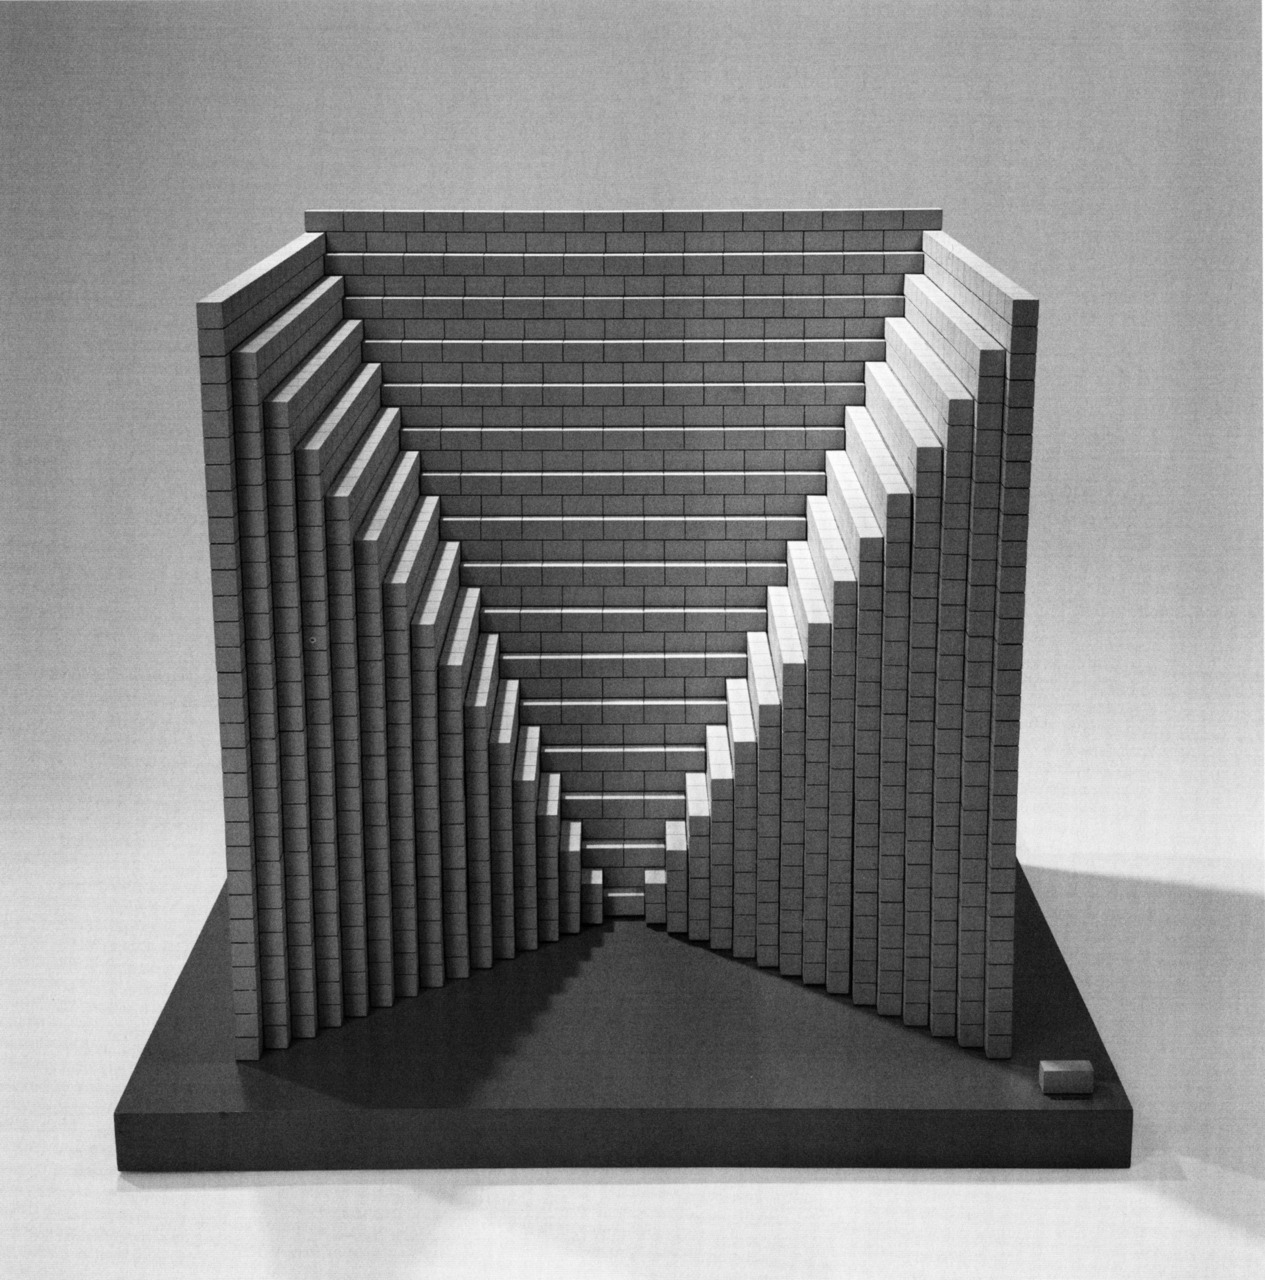 Sol LeWitt, 'Negative Pyramid', Maquette for Concrete Block Structure, 1996.